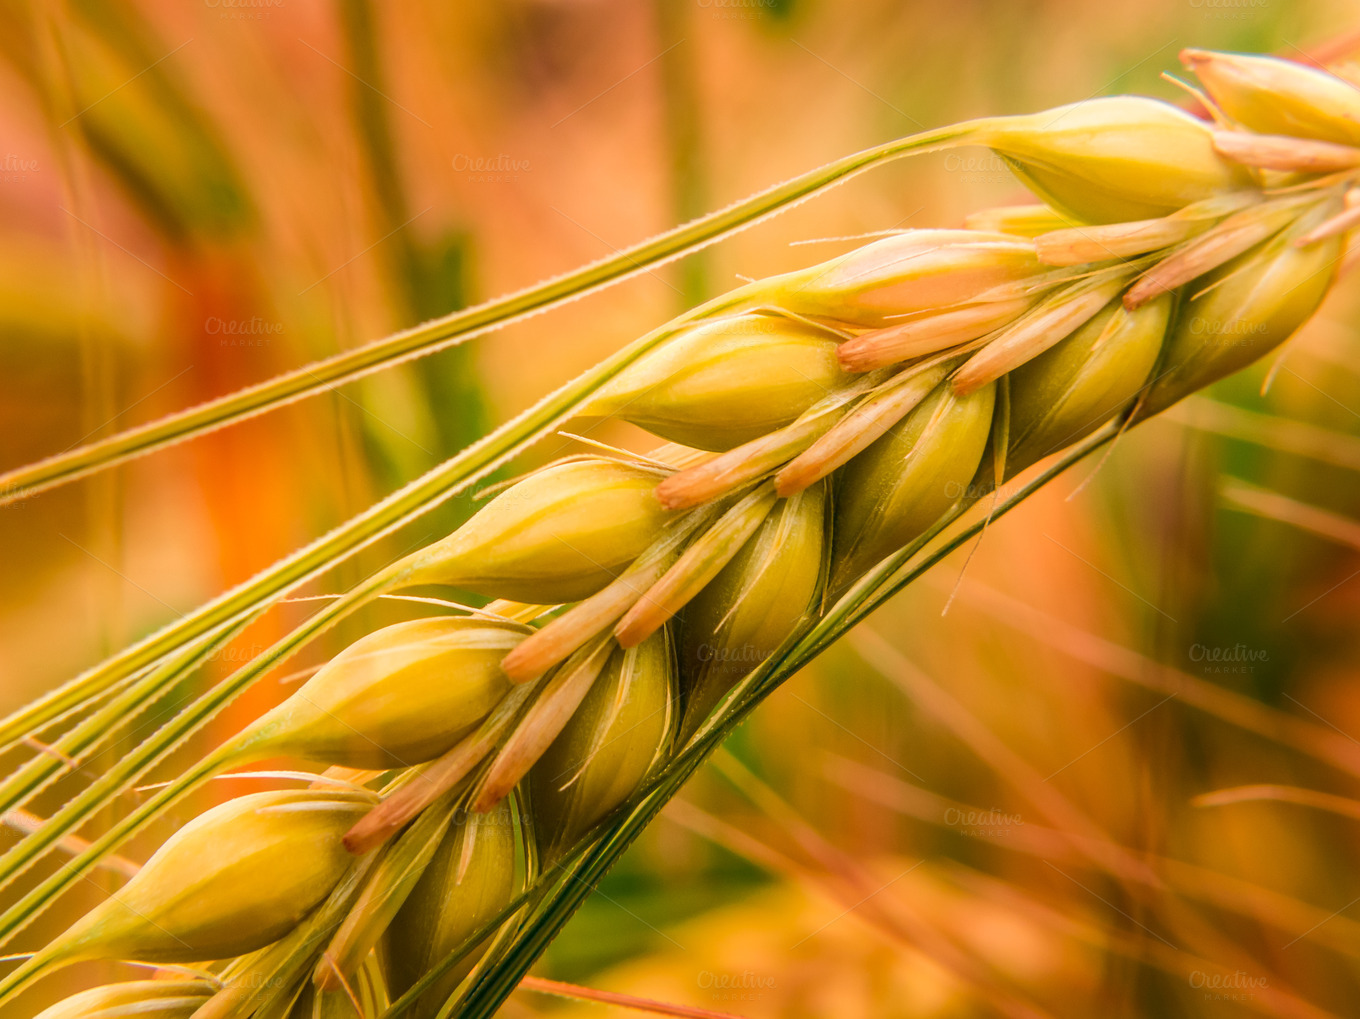 Detail-of-golden-wheat